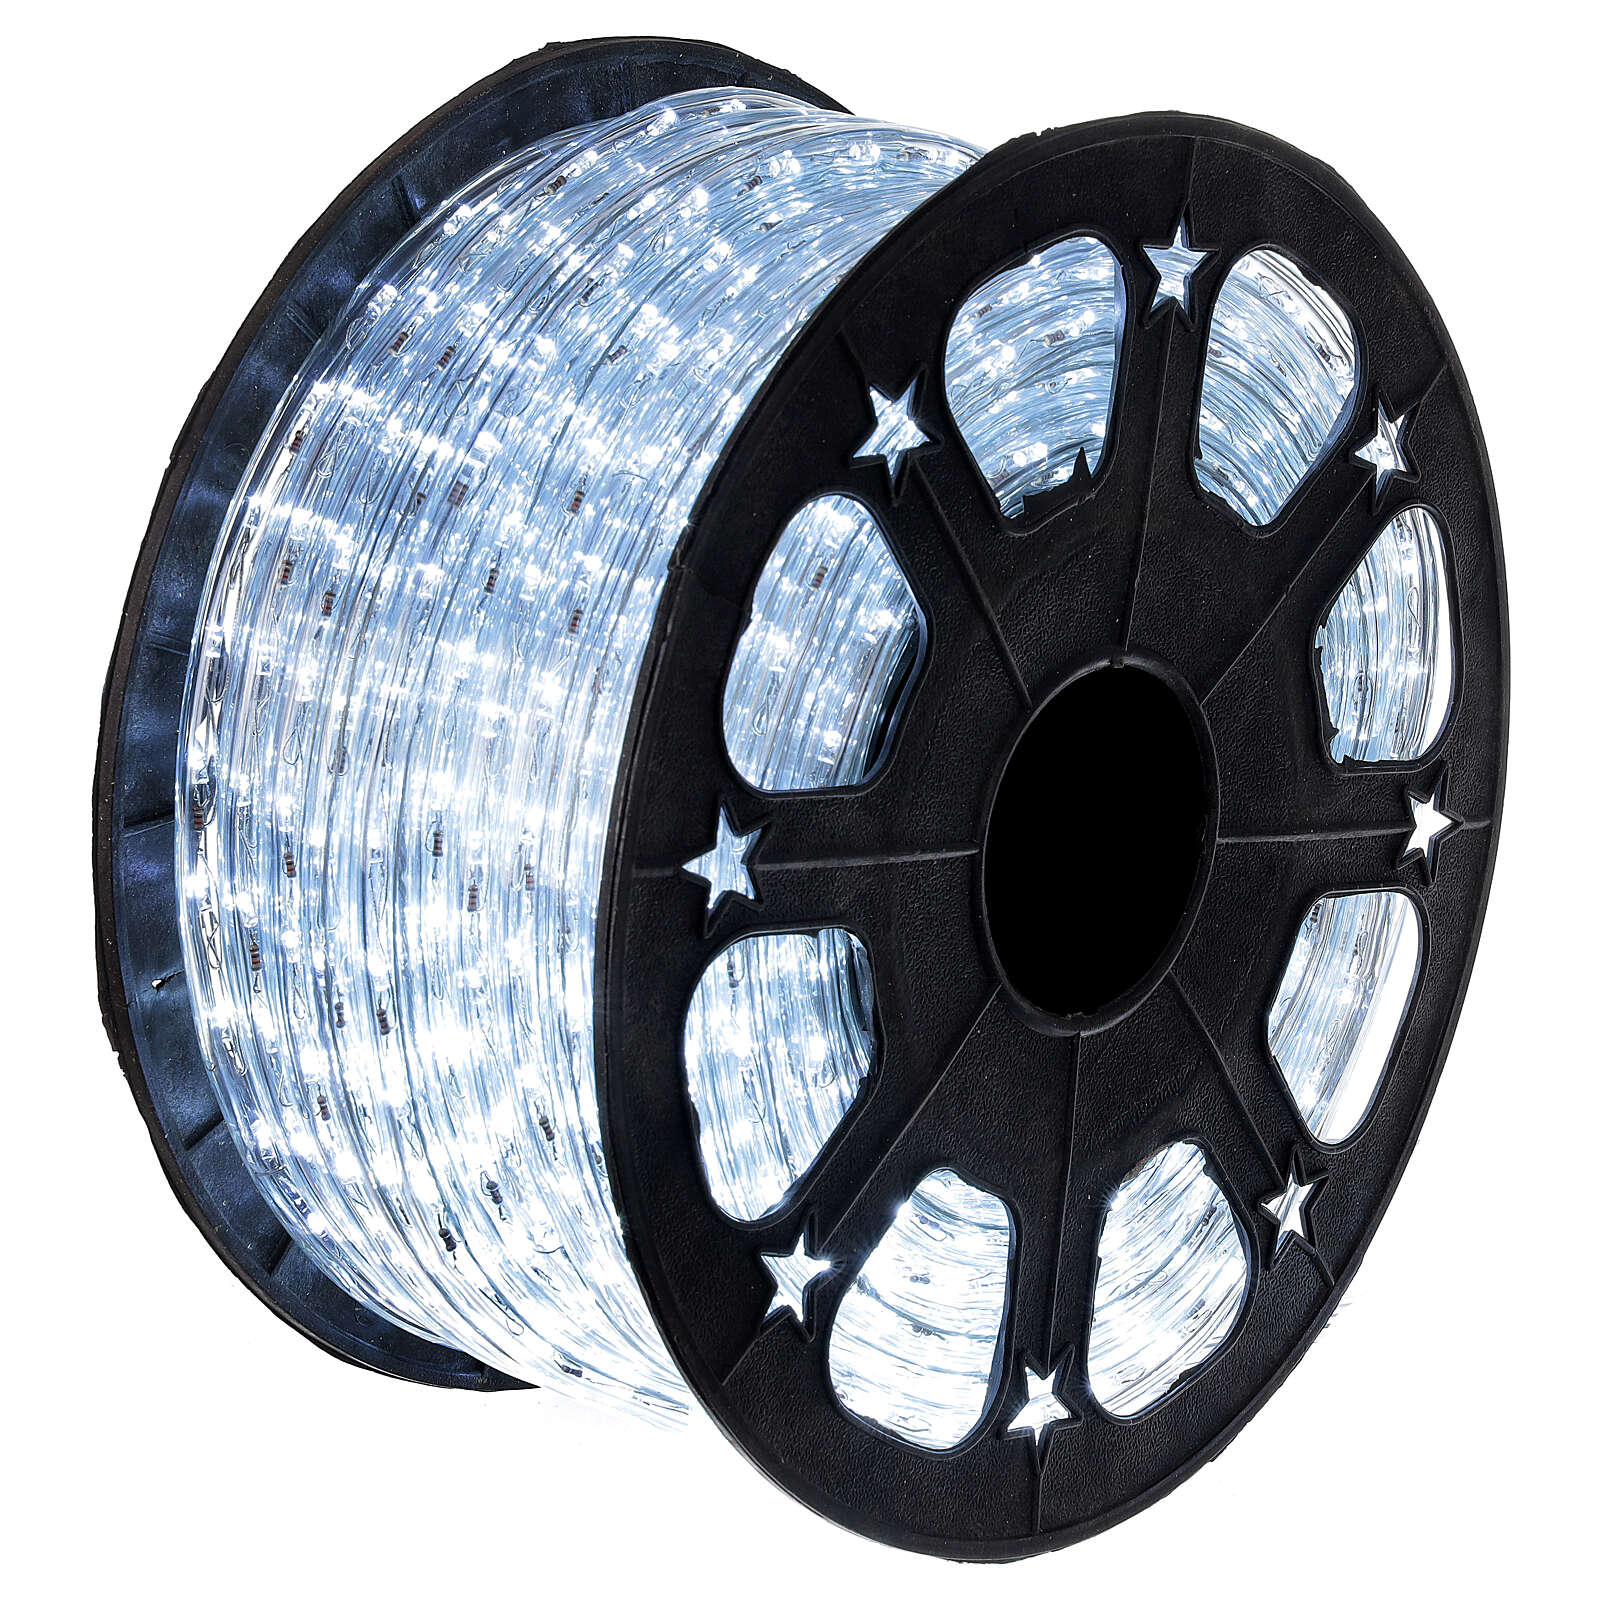 LED rope light PROFESSIONAL grade 44 m 2 wires 1584 LEDs 13 mm cold white OUTDOOR 3